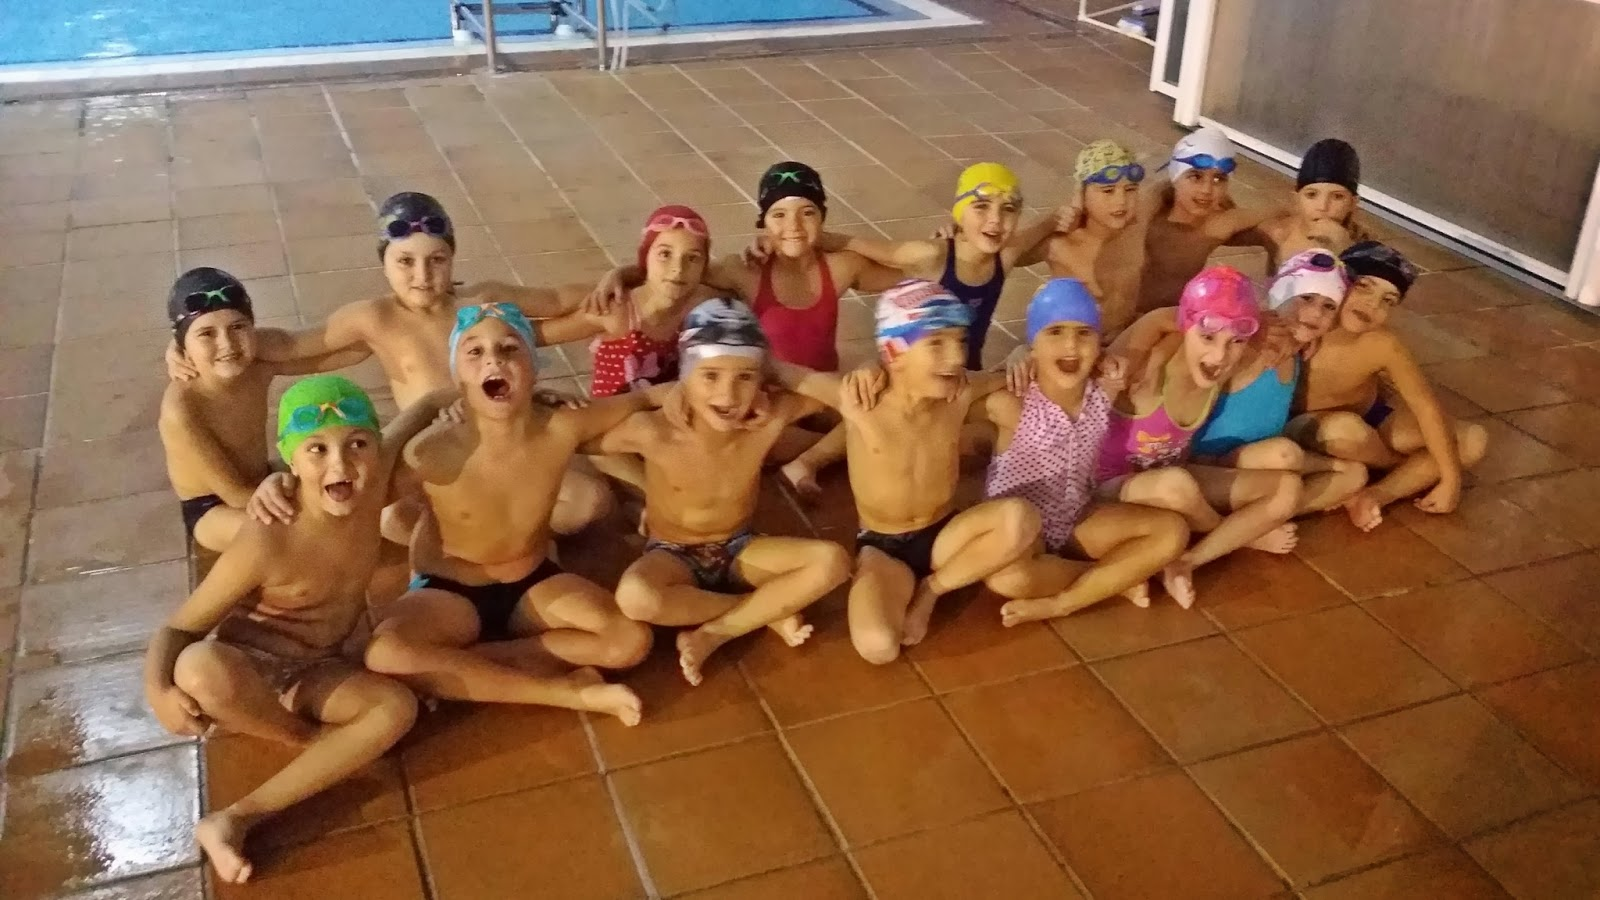 Club nataci n granada noviembre 2013 for Piscina municipal motril